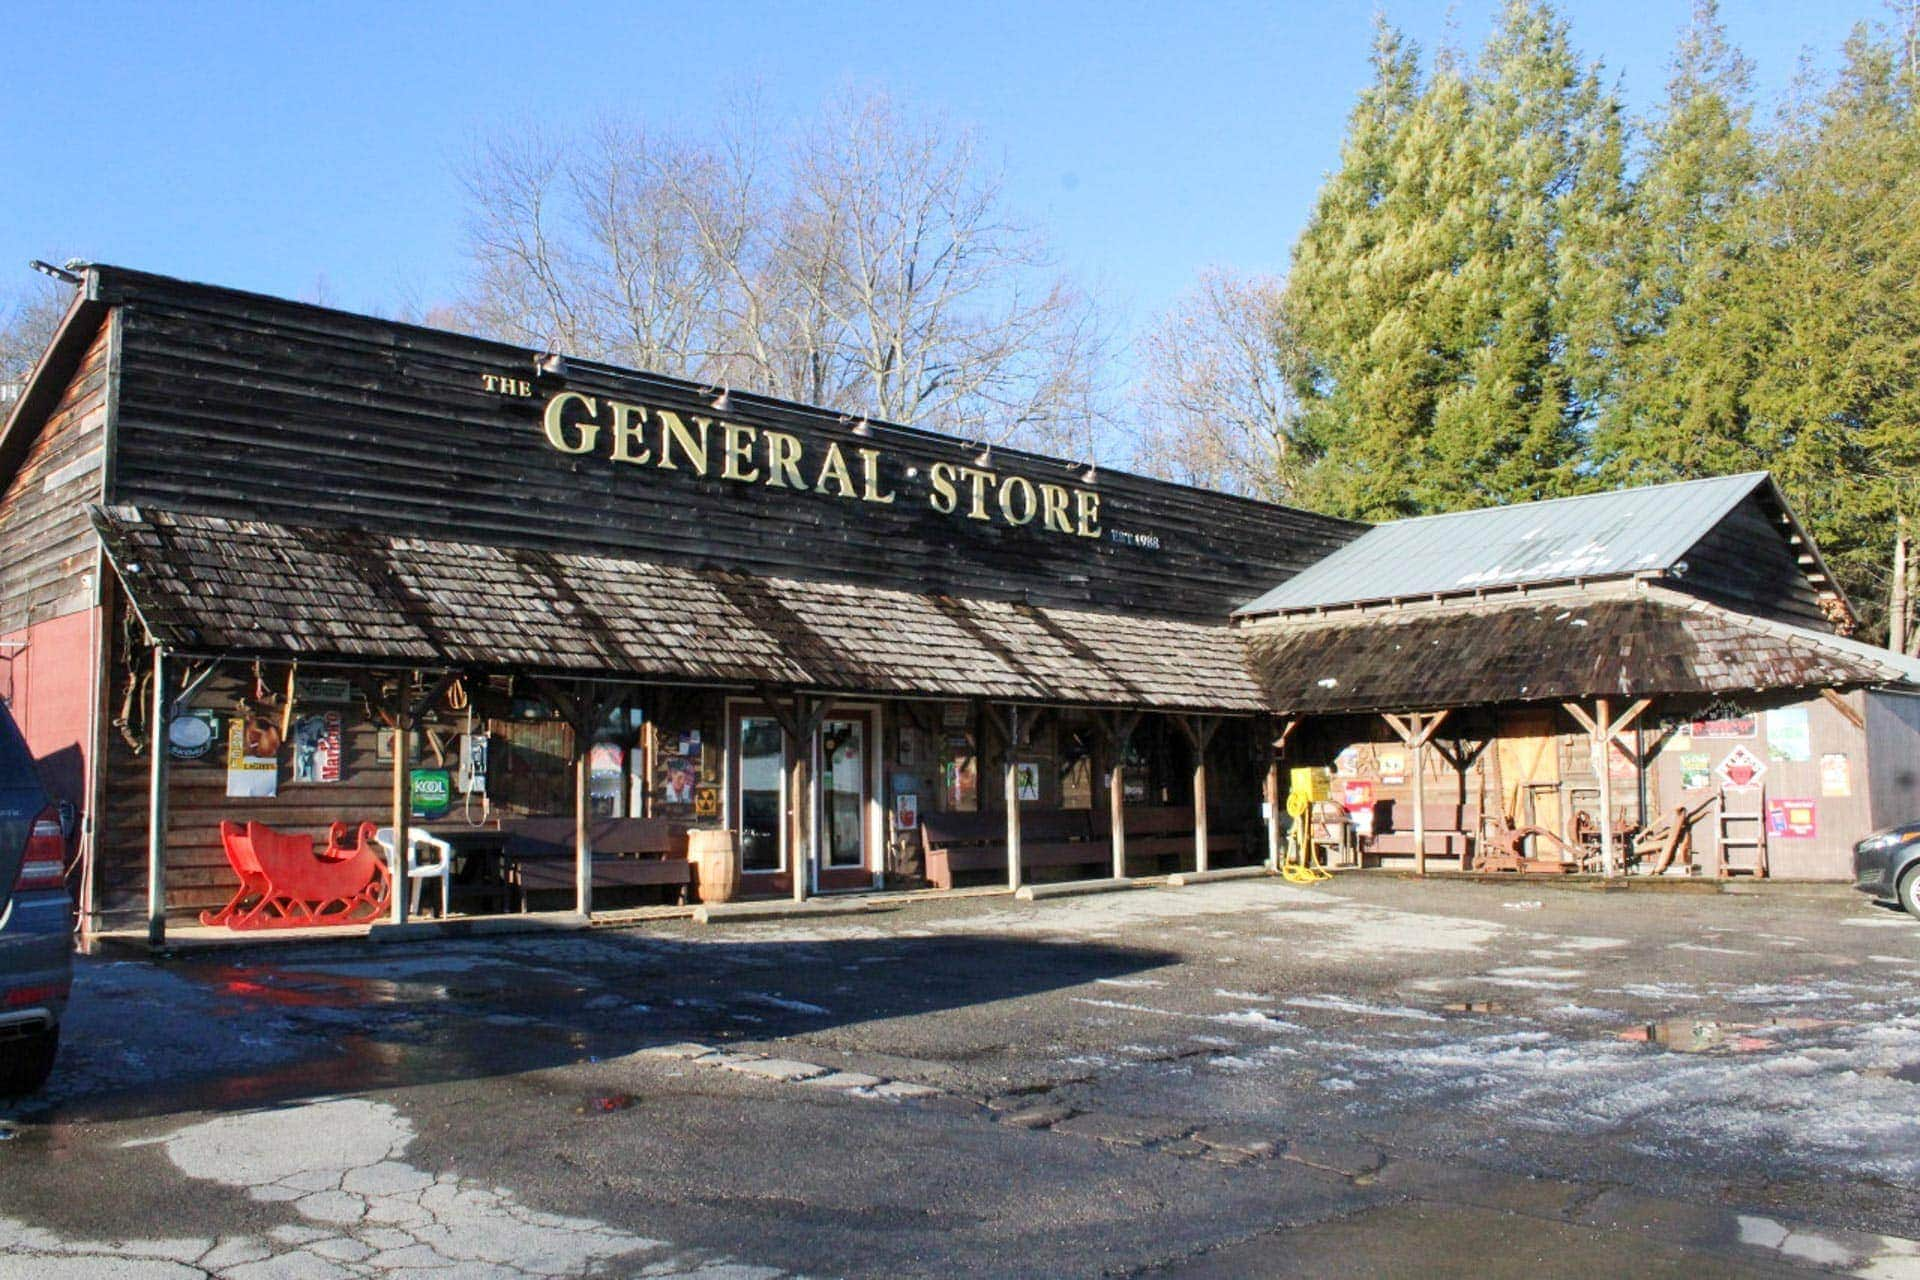 Hinkleville general store reopens as The George's General Store